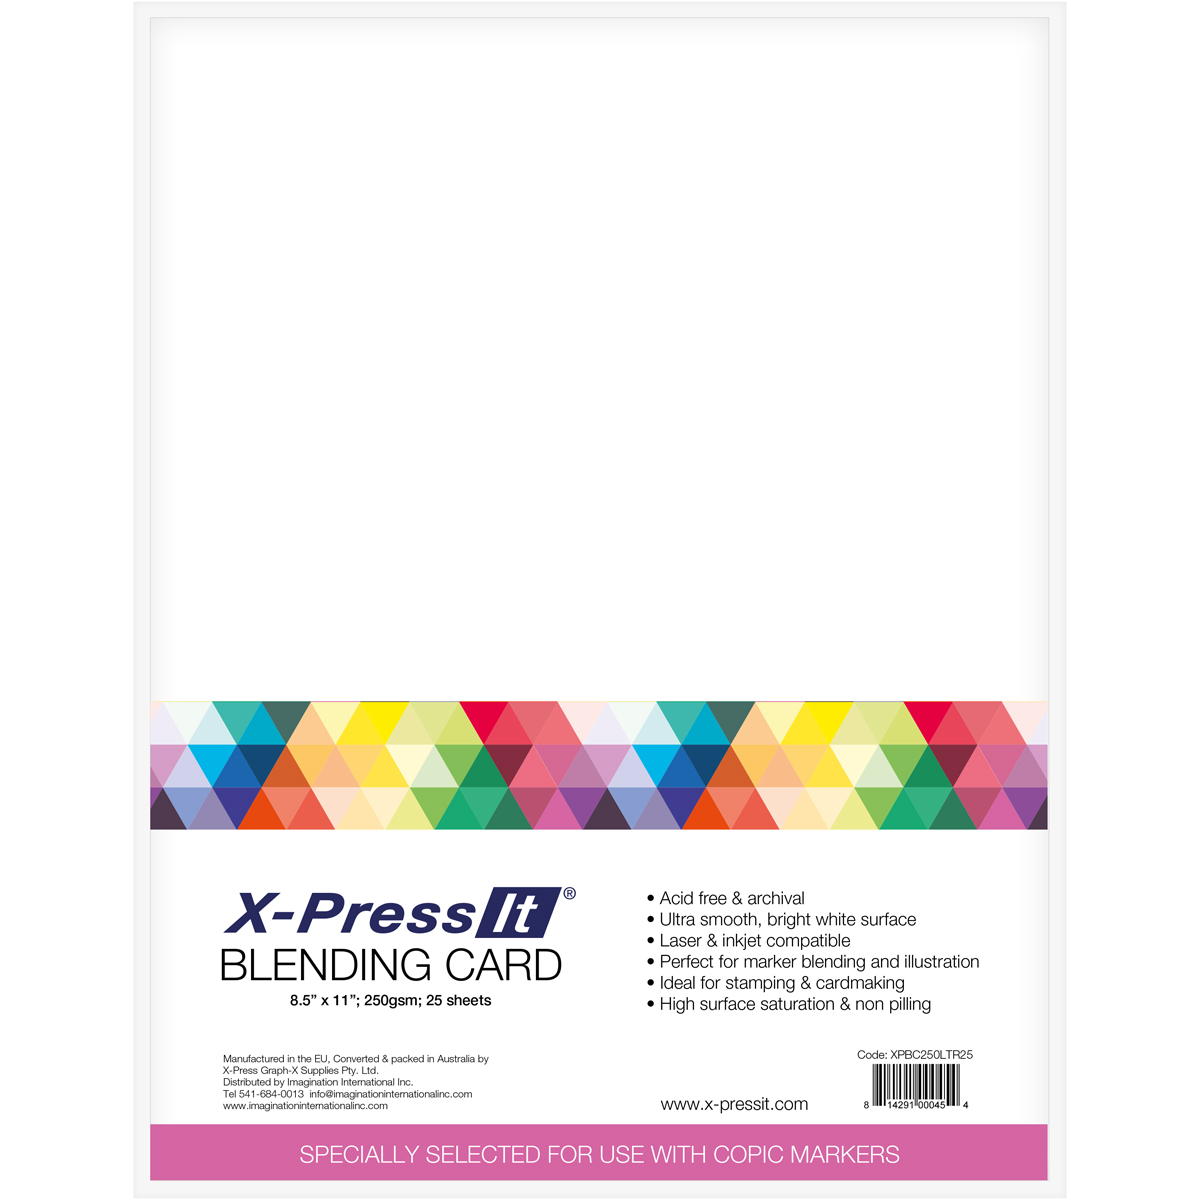 Copic Markers X-Press It Blending Card, 25 Sheets